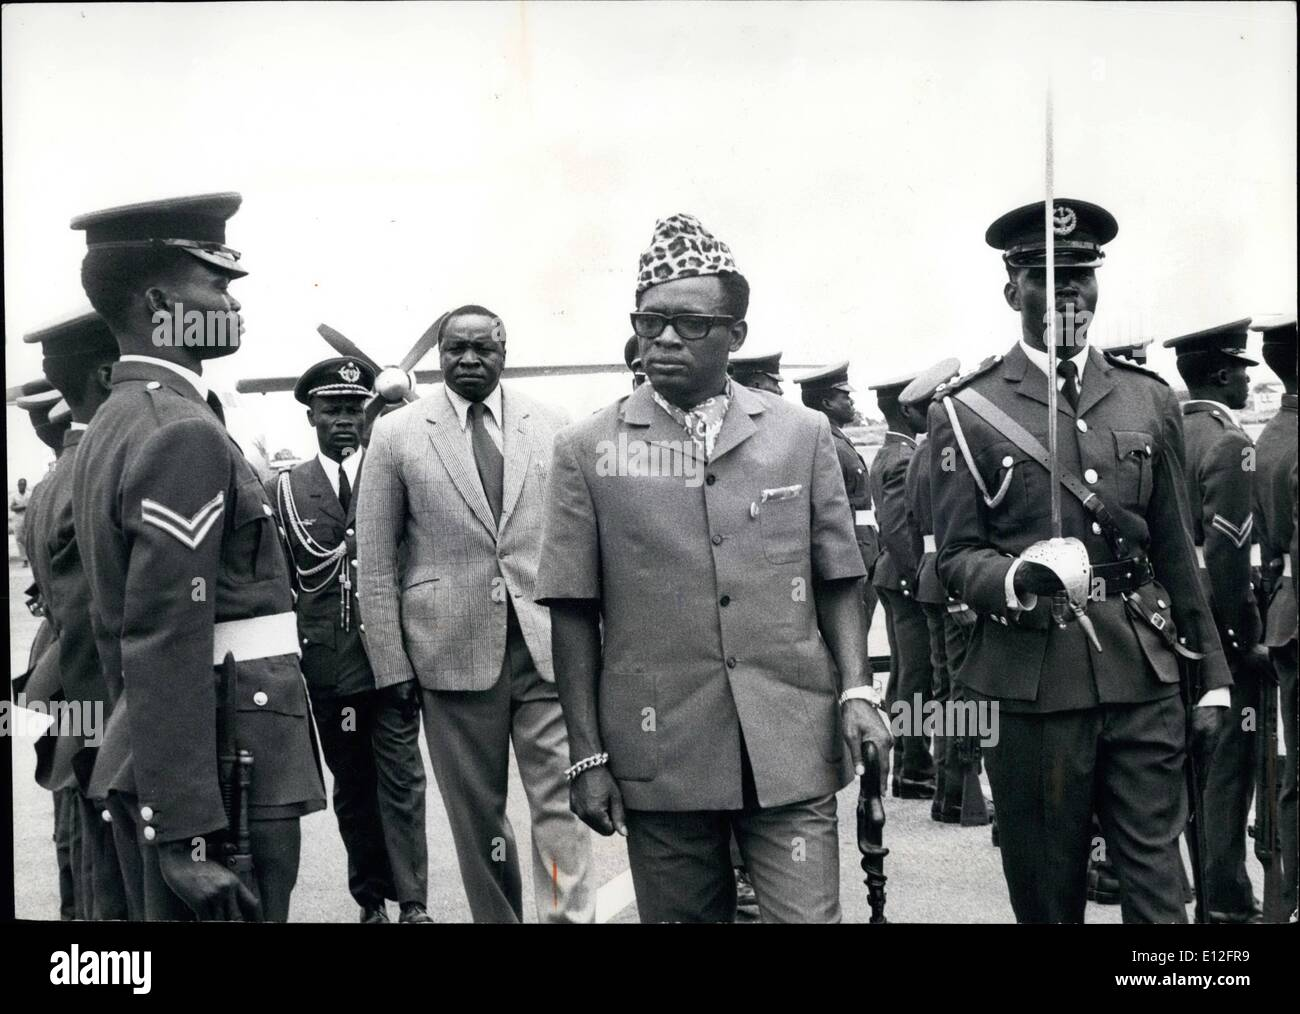 Jan. 09, 2012 - During his official Visit to Uganda, President Mobutu Sese Seko of Zaire Inspects a Smart Contingent of the Uganda Air Force. Behind His Walked Unsmiling President Amin. - Stock Image